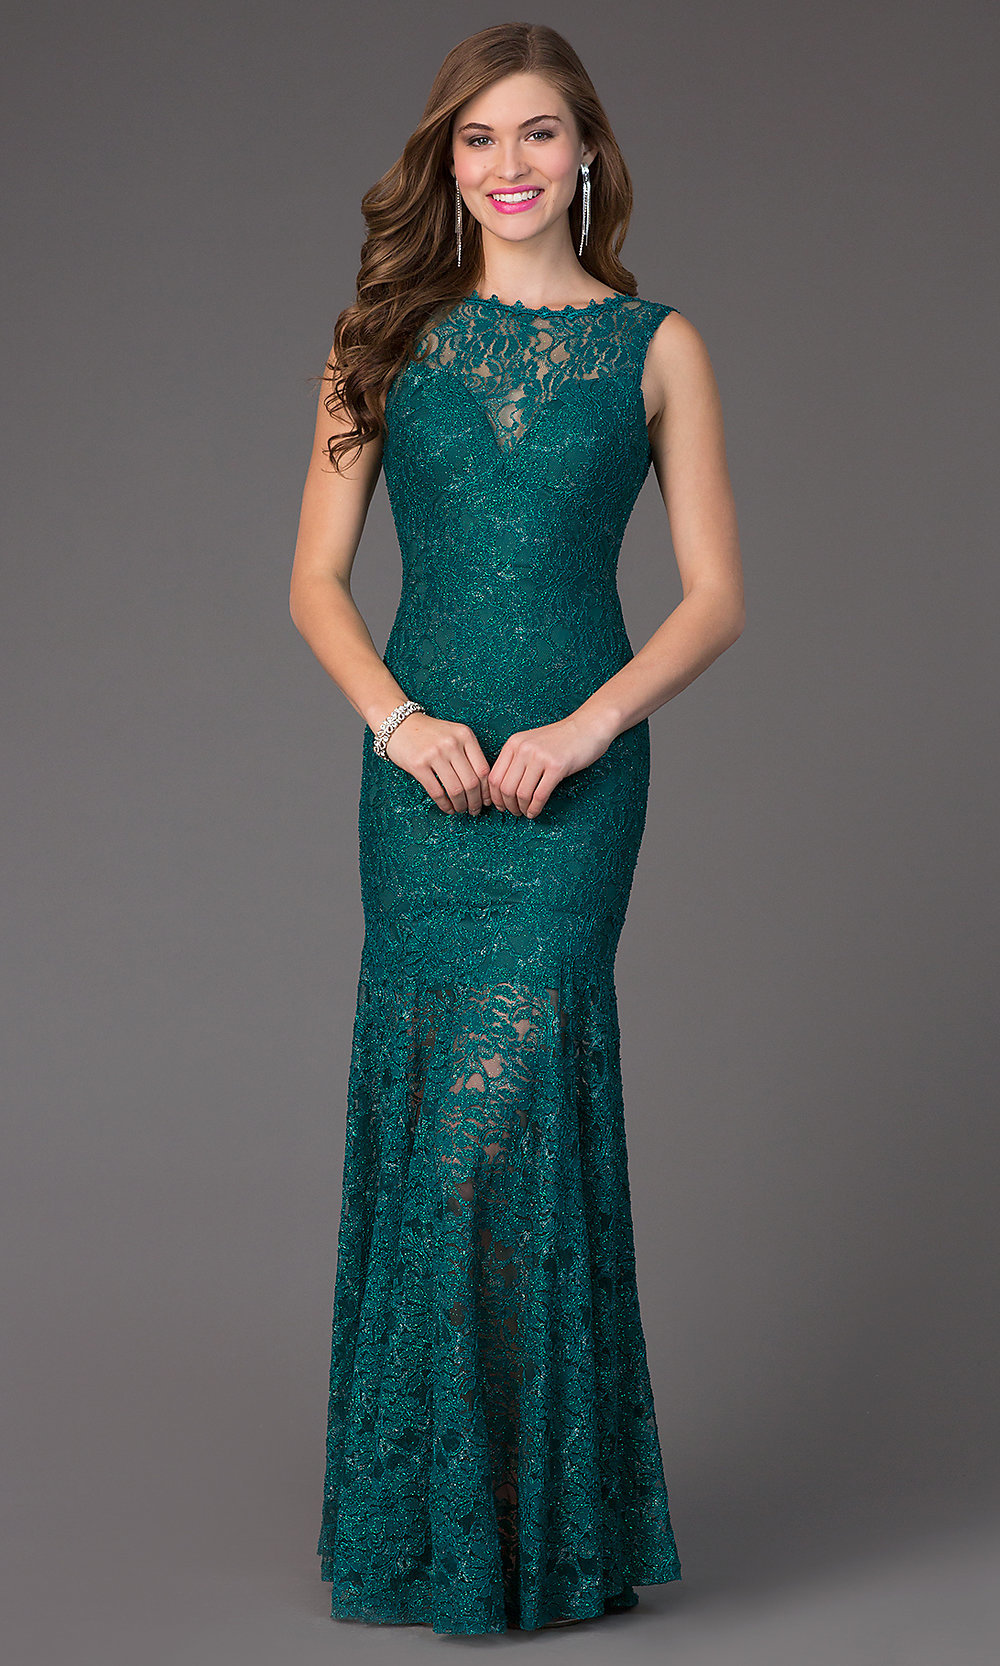 Formal Glitter-Lace Long Dress - PromGirl